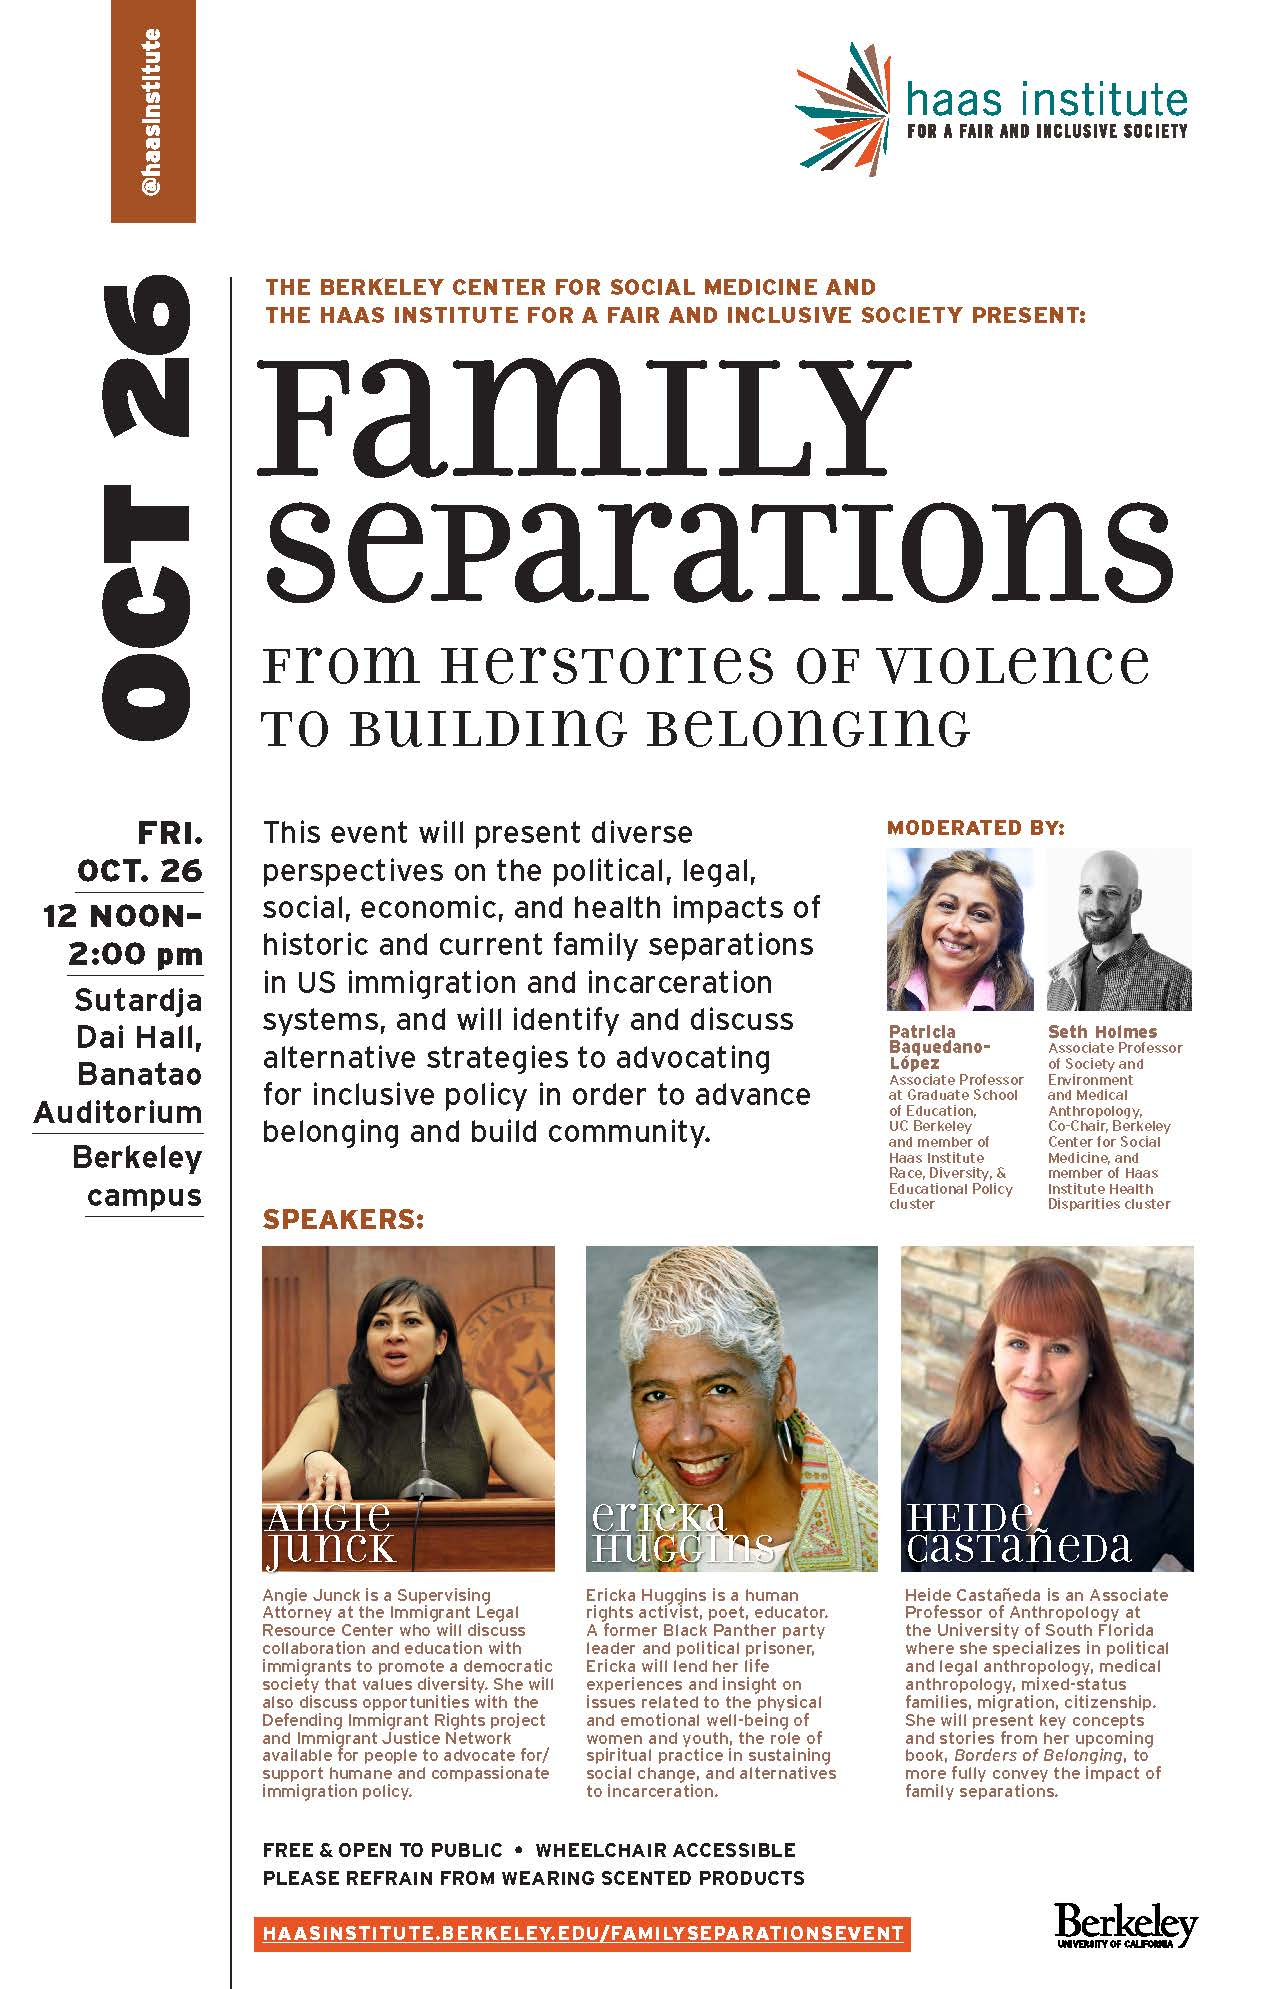 Flier for the Oct. 26 Family Separations event